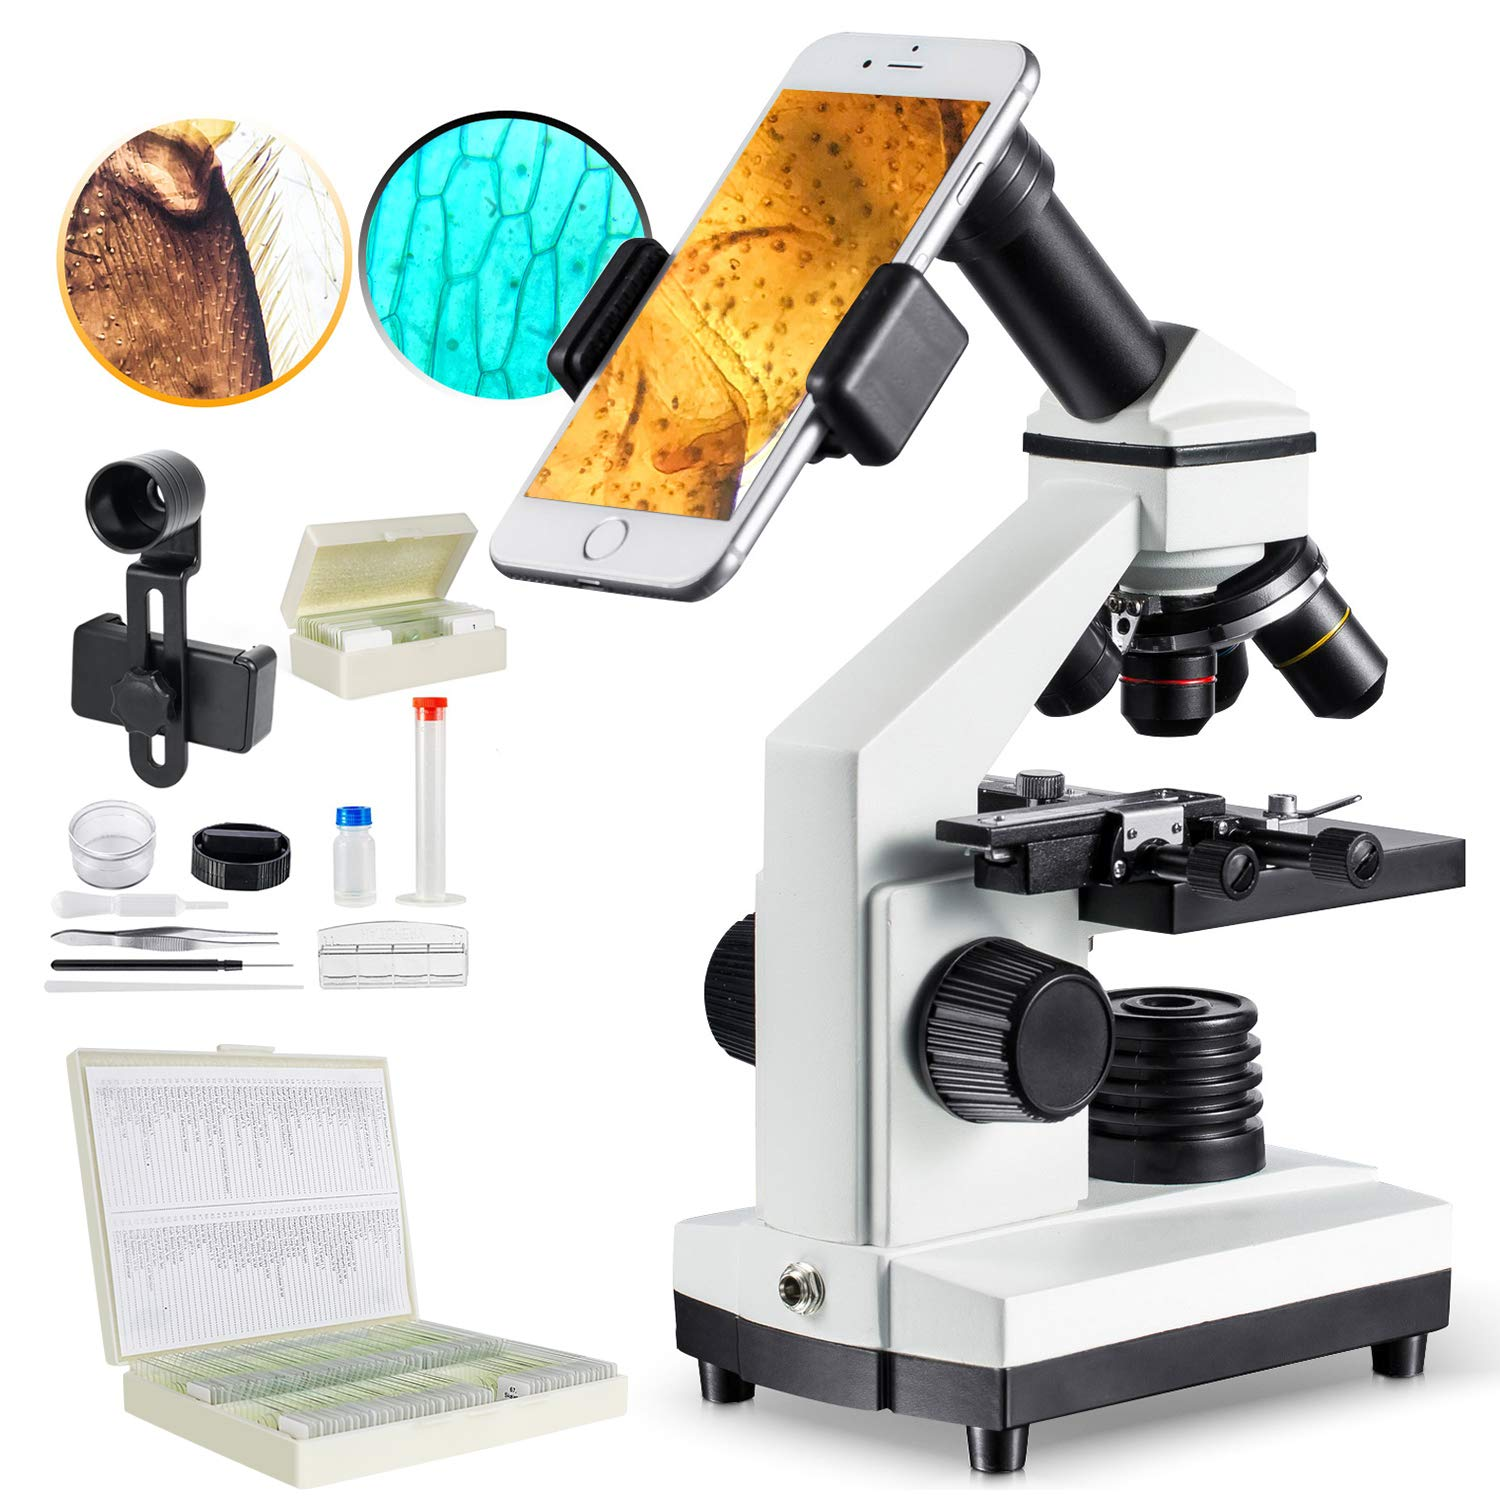 1000x Microscope for Students Plus 100 Pcs Prepared Slides for Microscope